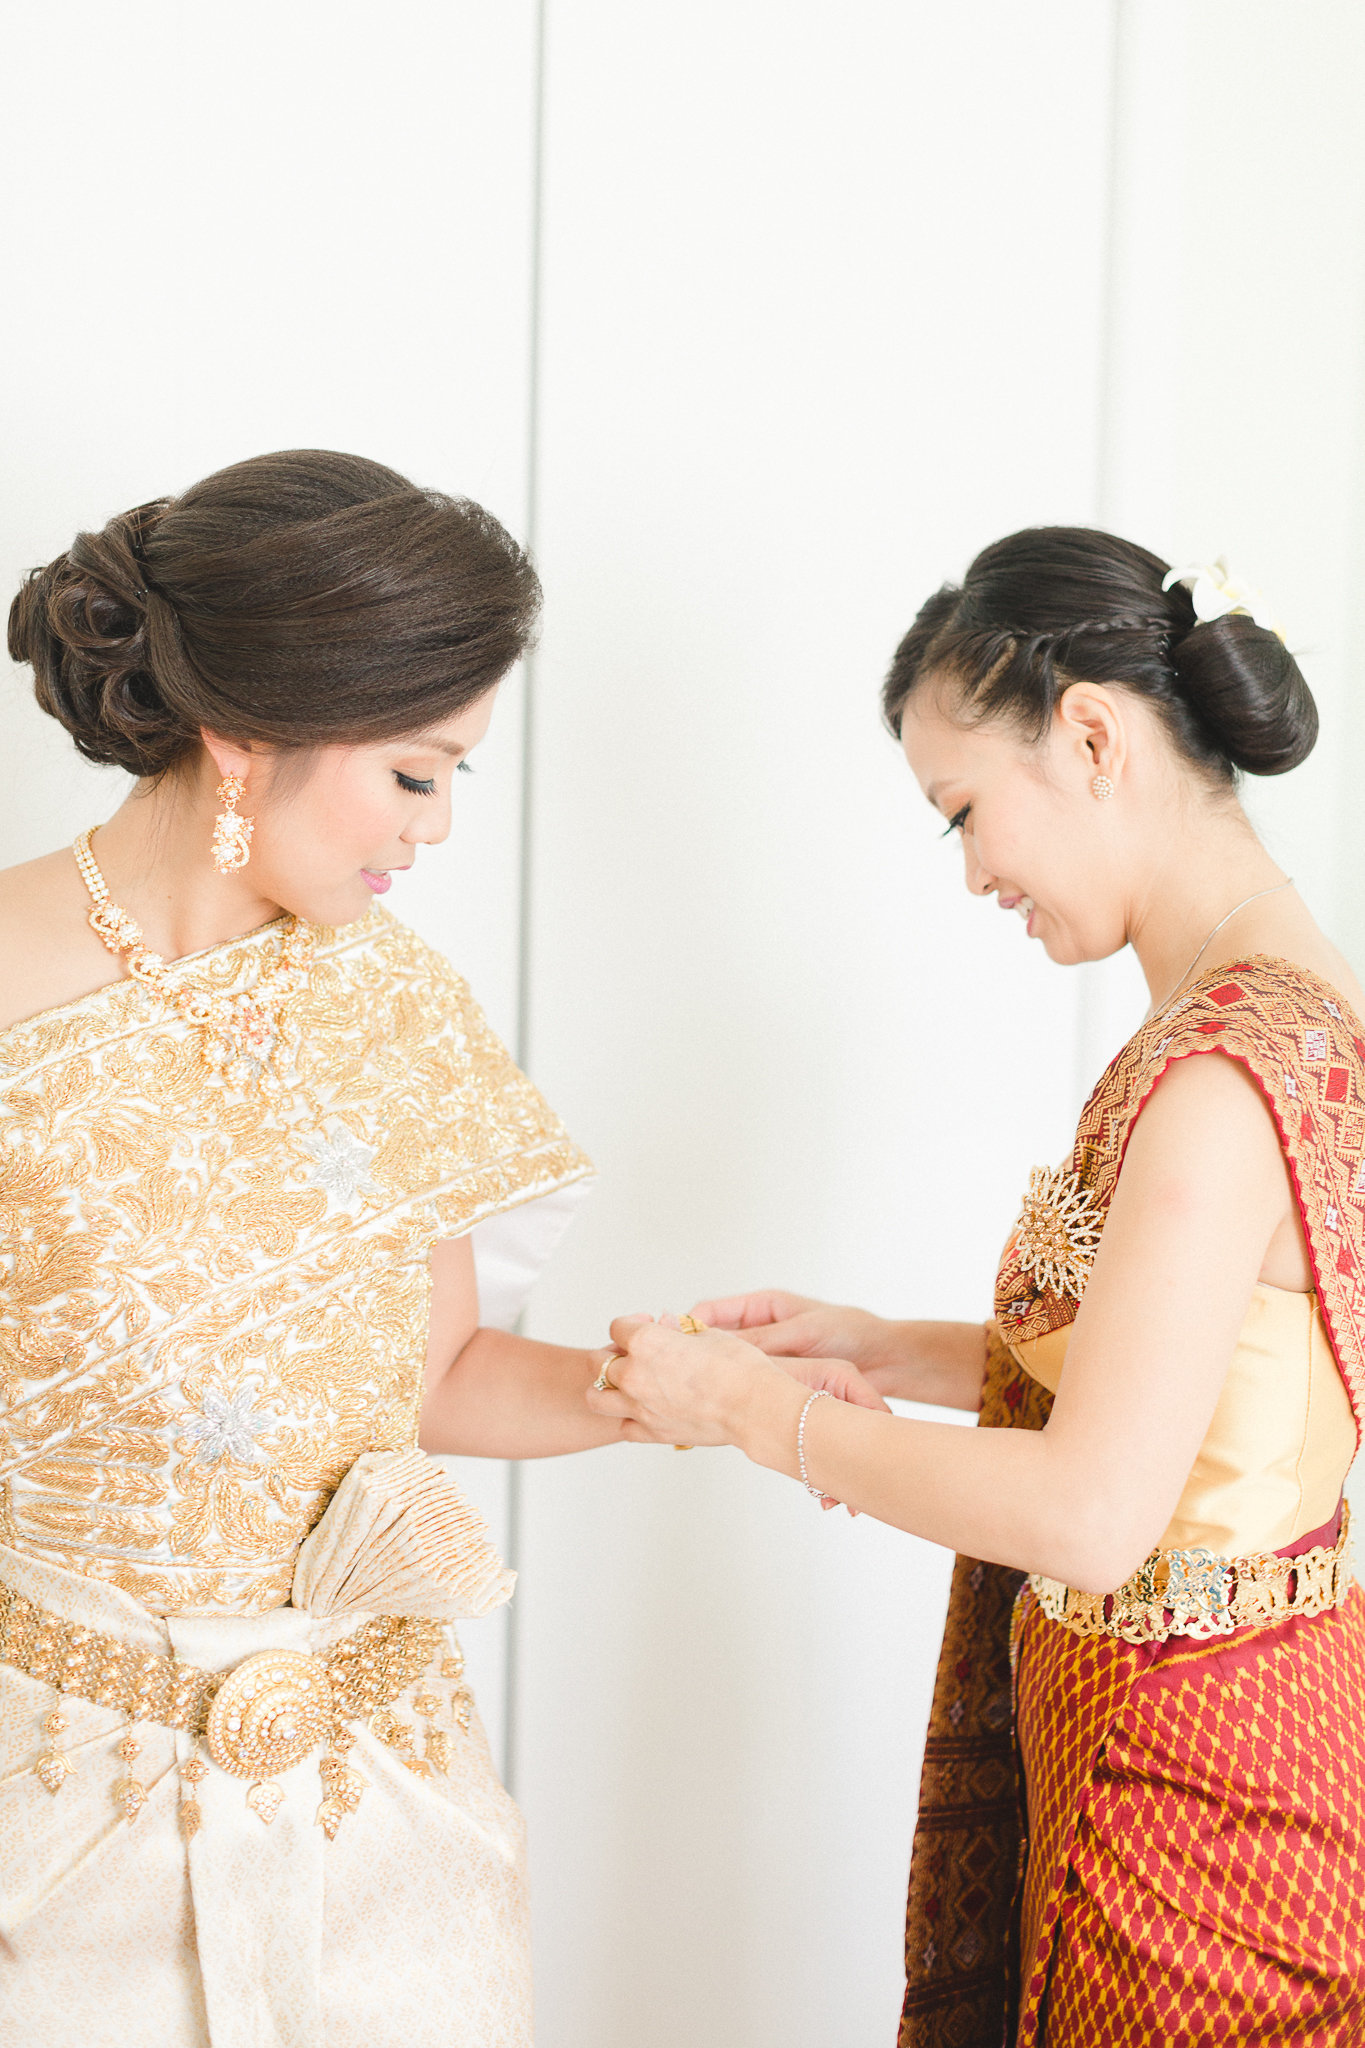 photographe-montreal-mariage-culturel-traditionnel-cambodgien-lisa-renault-photographie-traditional-cultural-cambodian-wedding-7